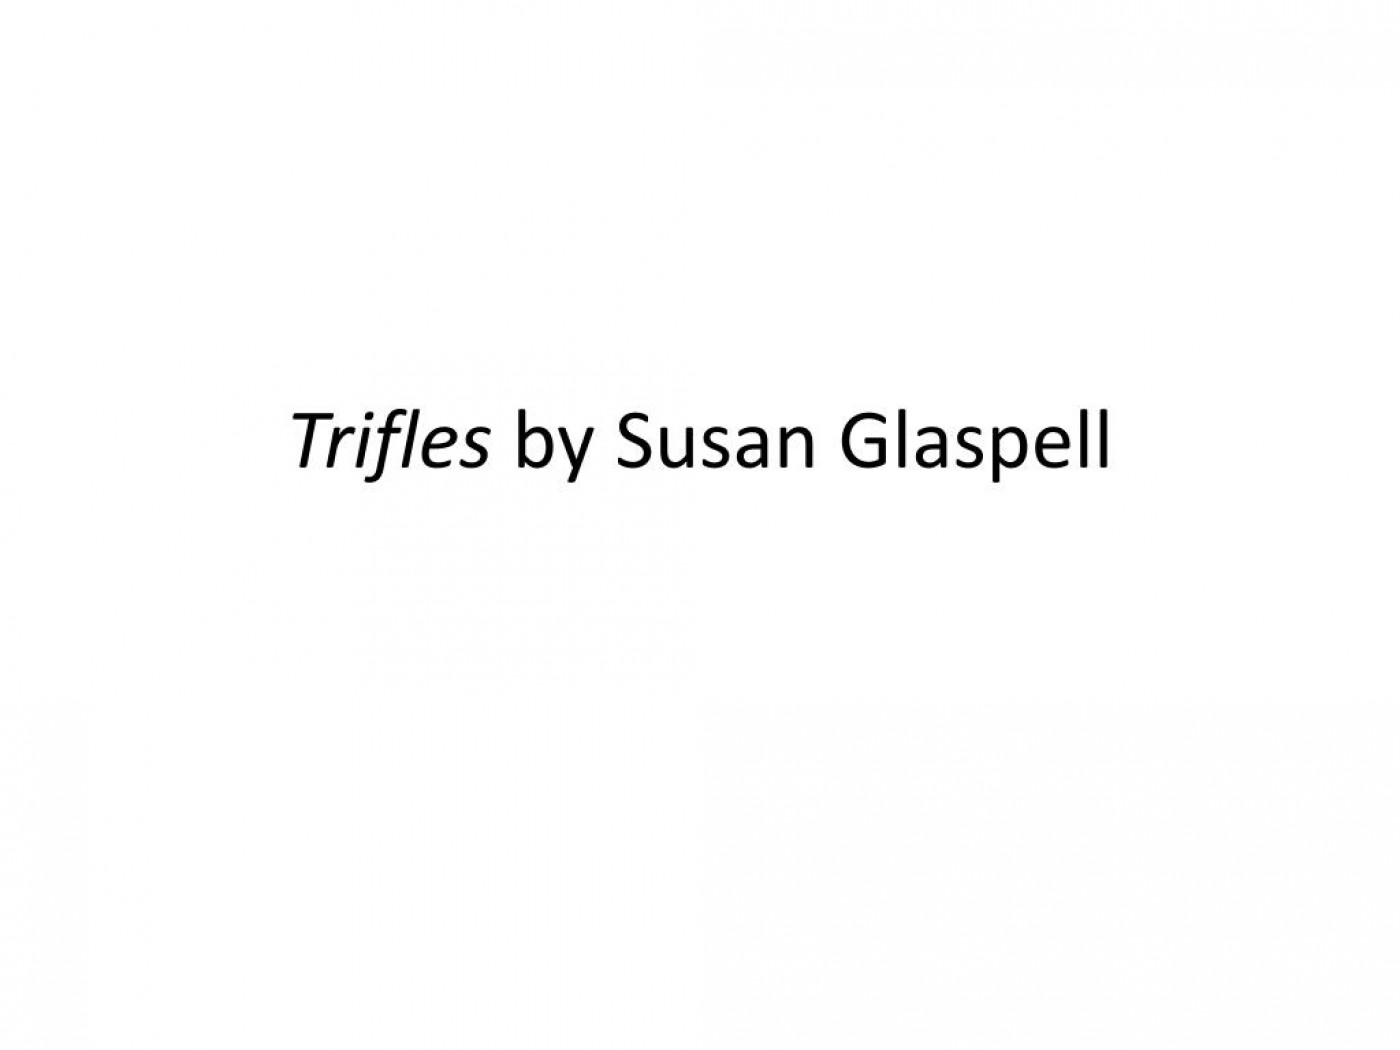 015 Trifles By Susan Glaspell L Essay Formidable On Gender Roles Pdf Examples 1400